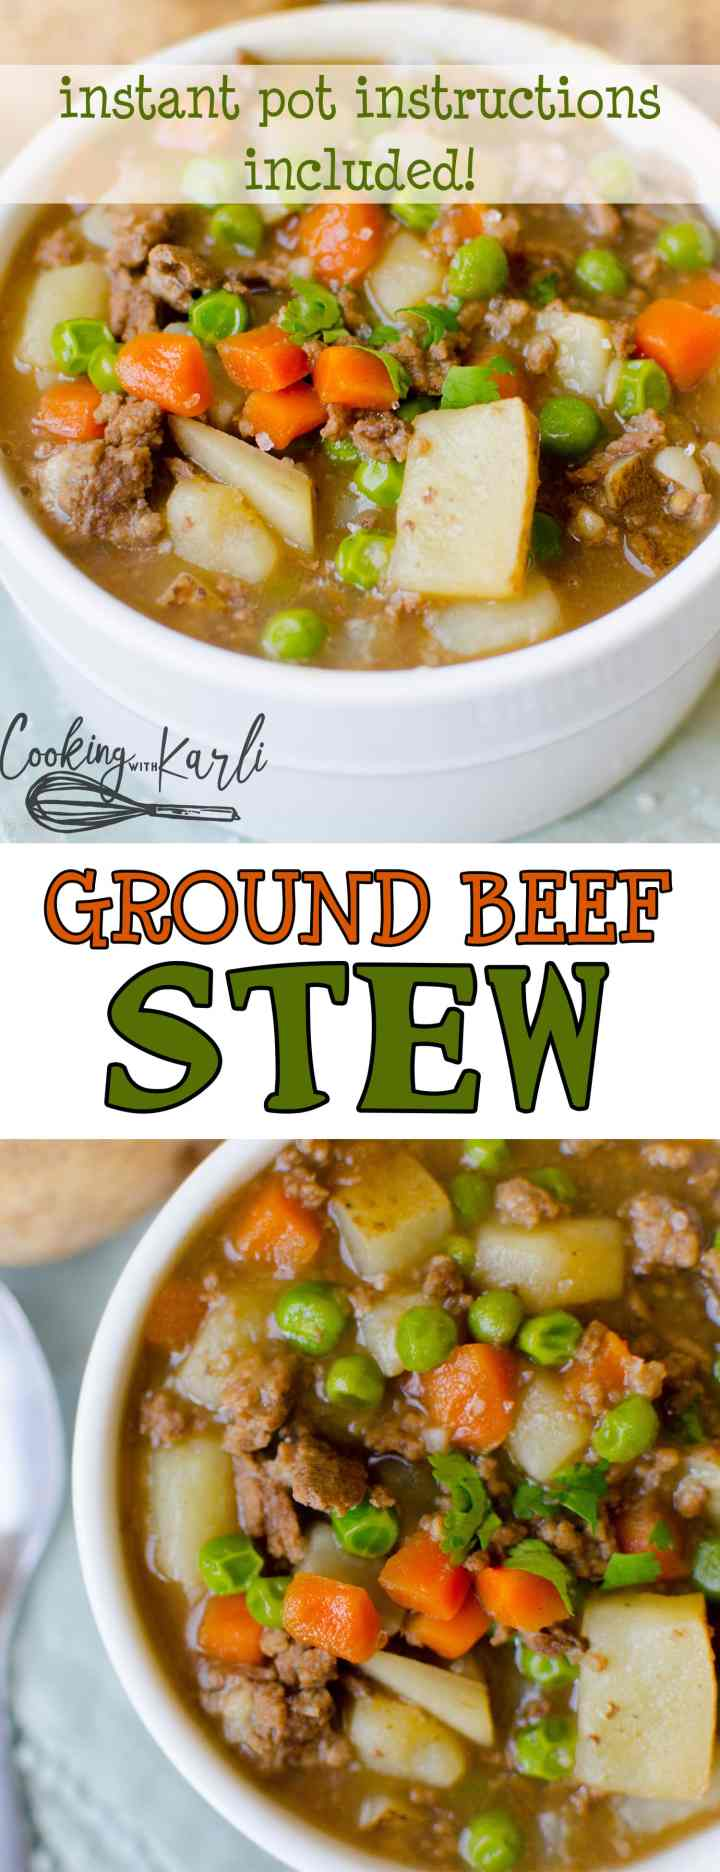 Ground Beef Stew is a thick and creamy gravy with ground beef, potatoes, peas and carrots. Making this in the Instant Pot makes this stew fastandeasy! Pair this stew with a crusty dinner roll and you've got yourself one hearty meal! |Cooking with Karli| #instantpot #groundbeef #stew #recipe #dinner #maindish #hearty